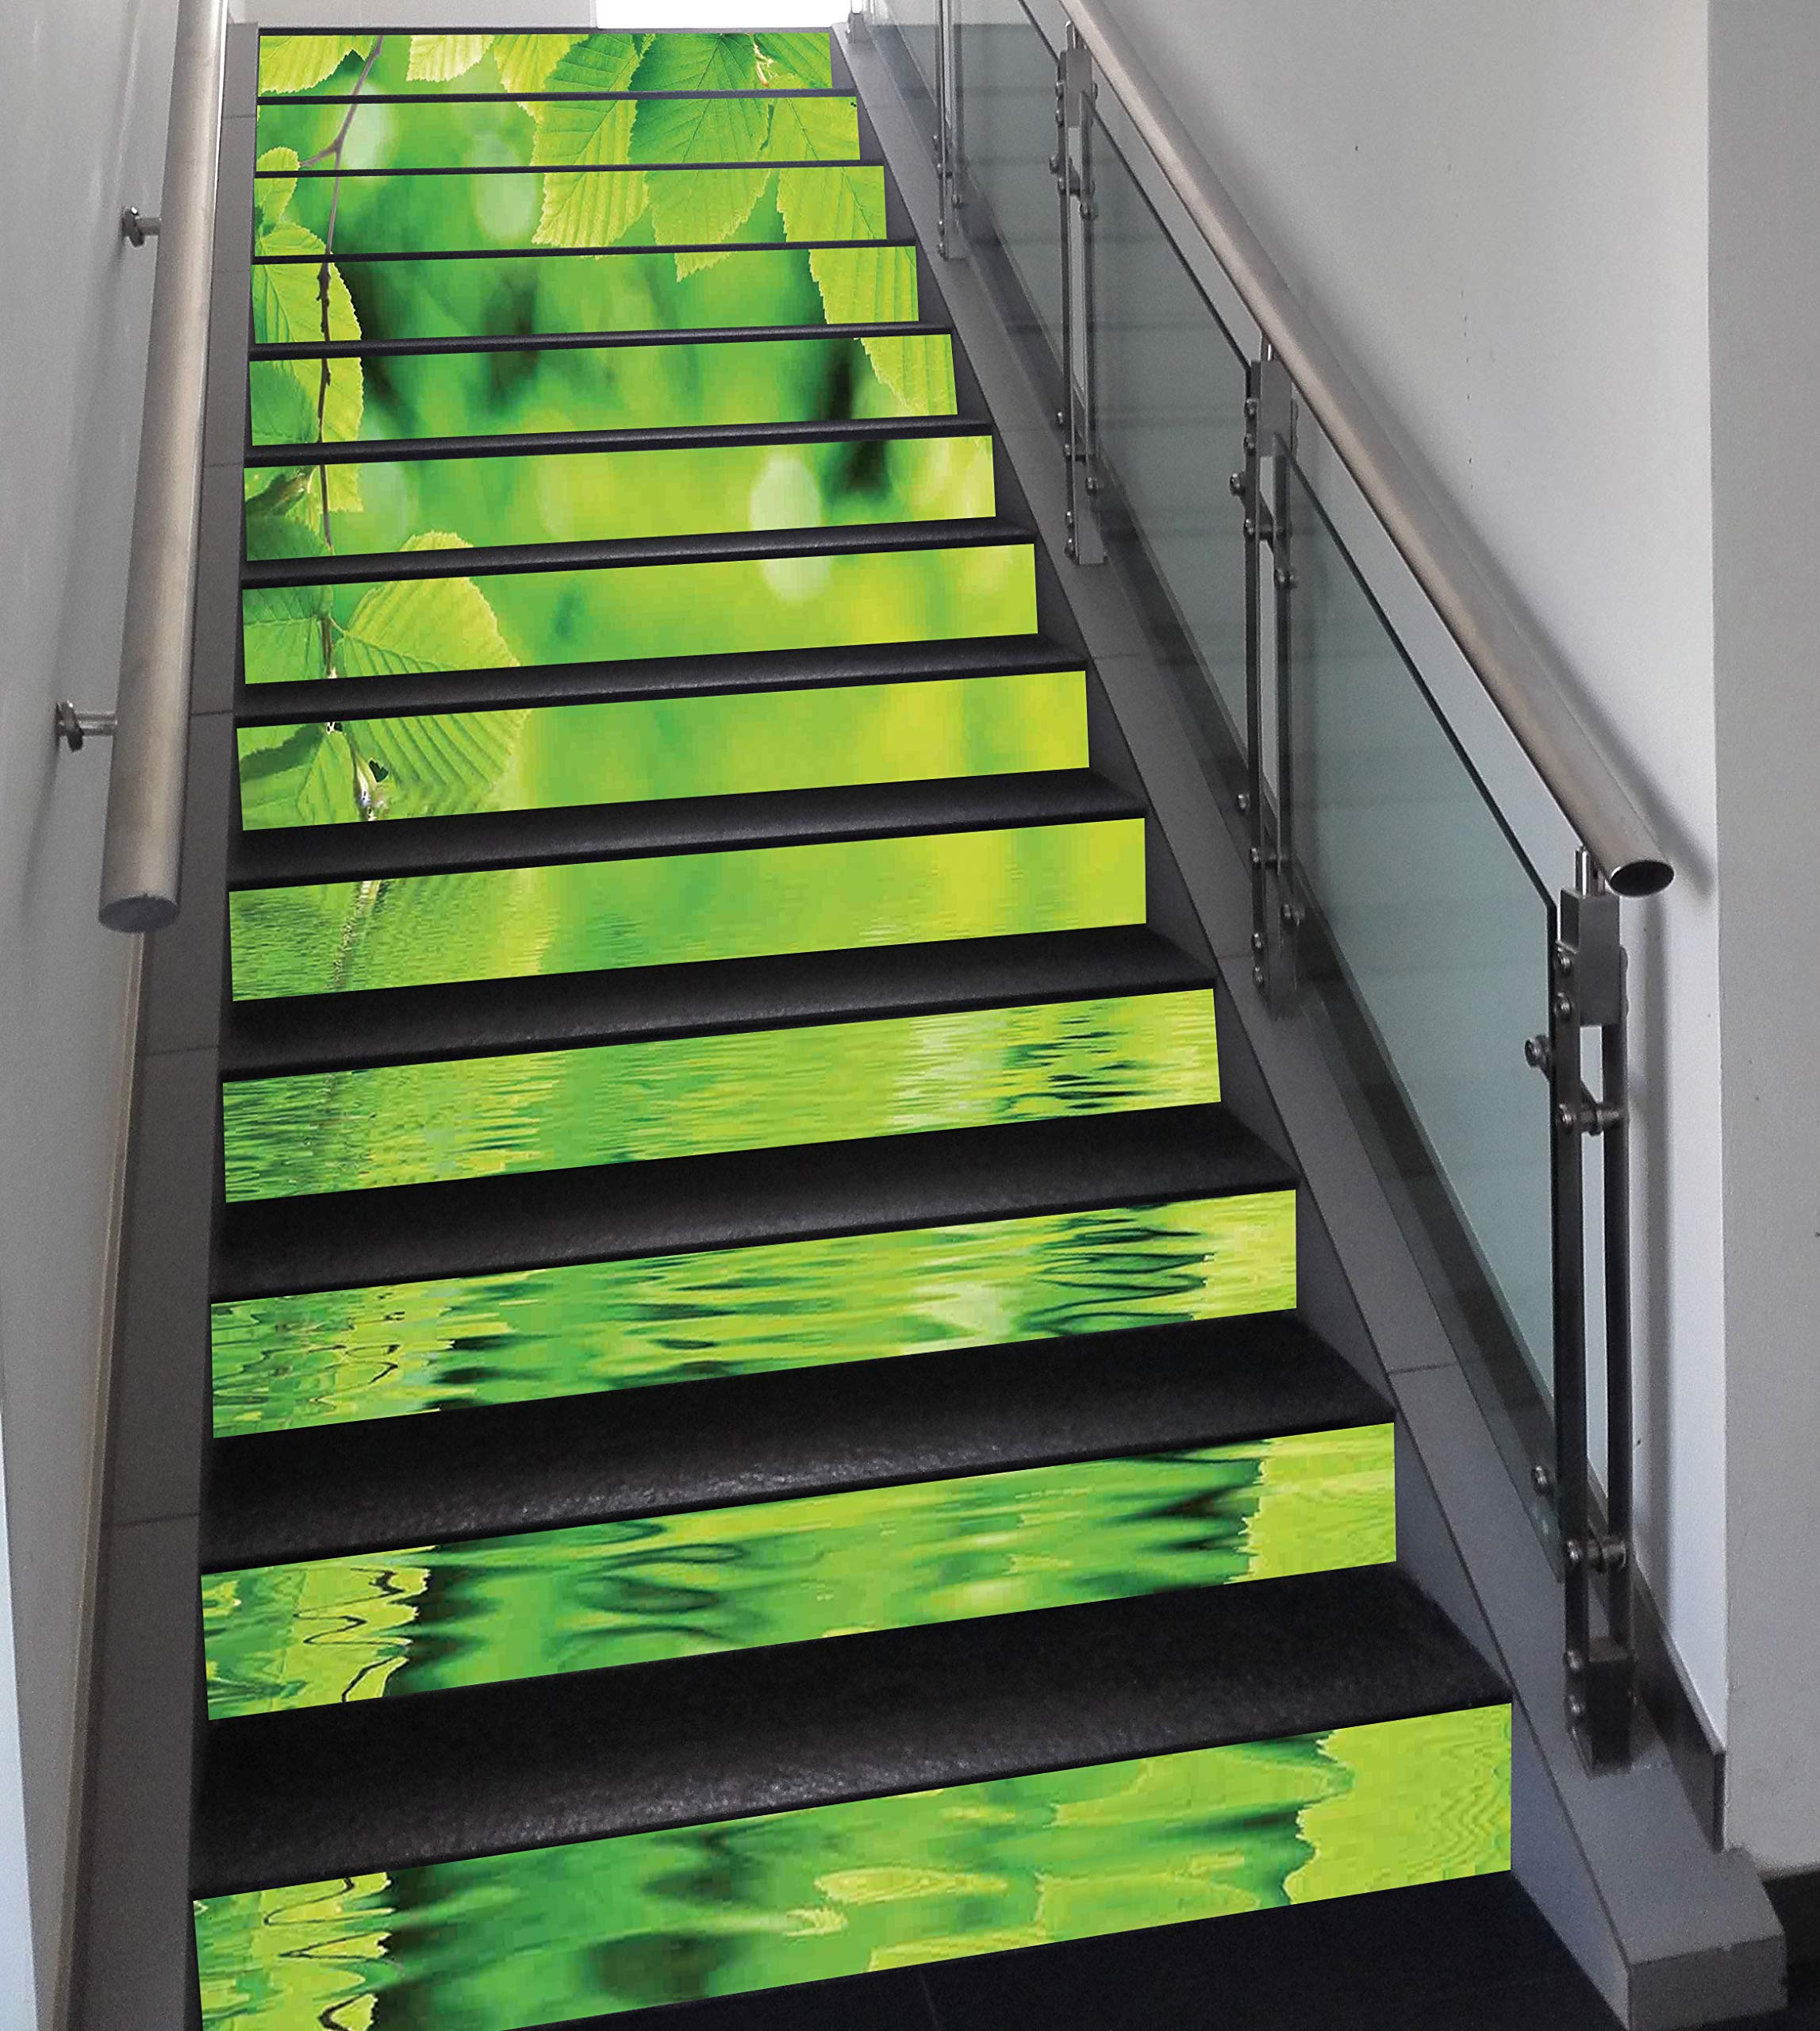 Stair Stickers Wall Stickers,13 PCS Self-adhesive,Leaves,Leaves in Water Spa Open Your Chakra with Nature Meditation Ecological Monochrome Photo,Green,Stair Riser Decal for Living Room, Hall, Kids Roo